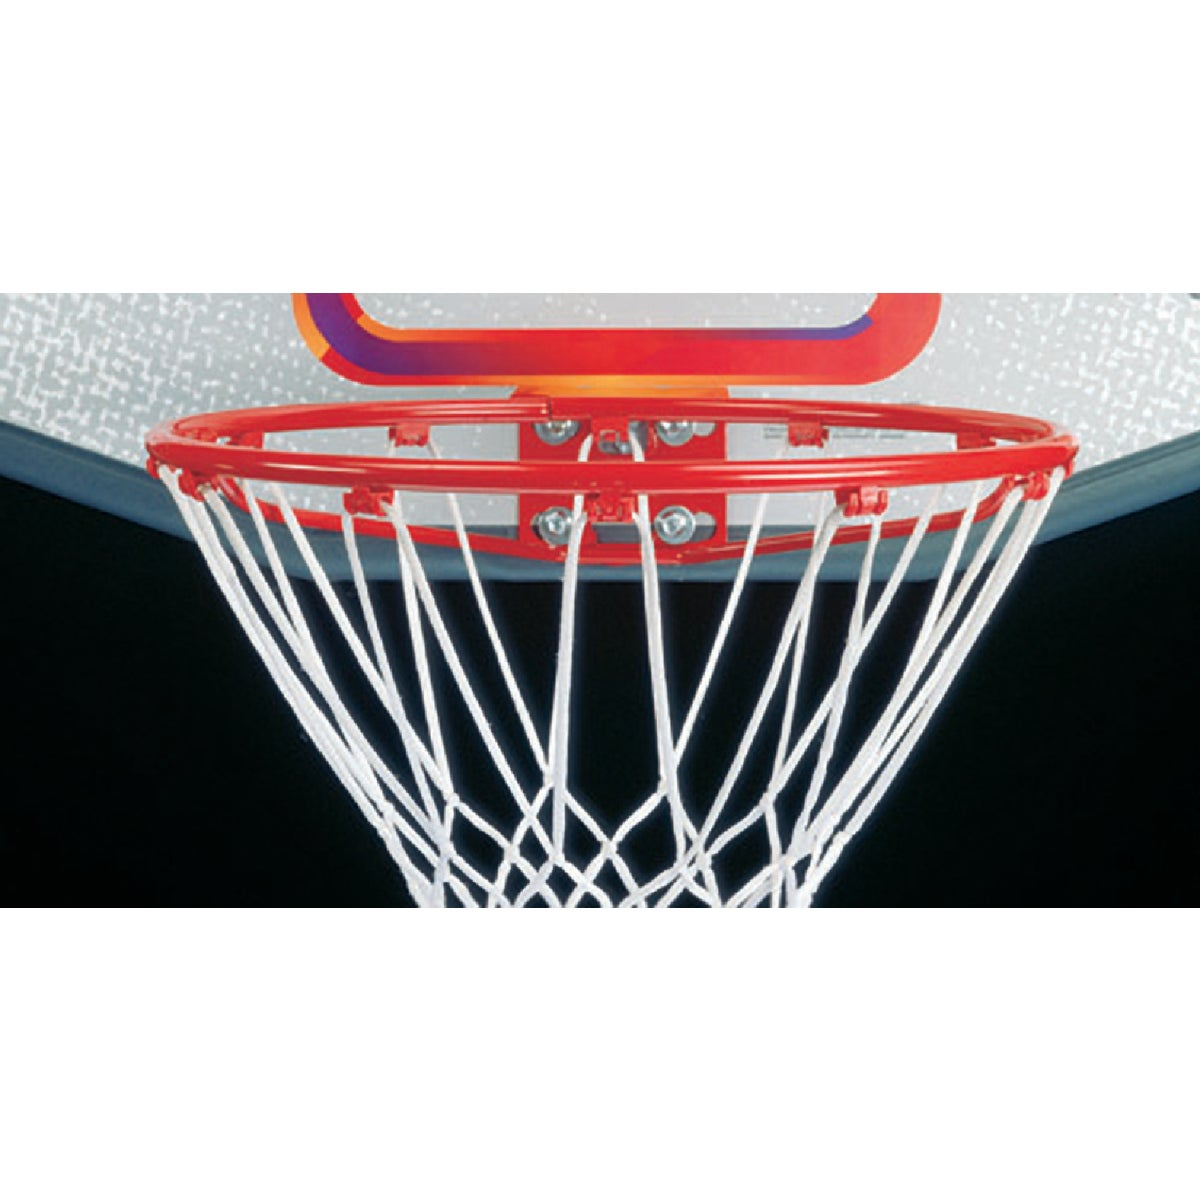 BASKETBALL GOAL AND NET - 7811S by Huffy Sports